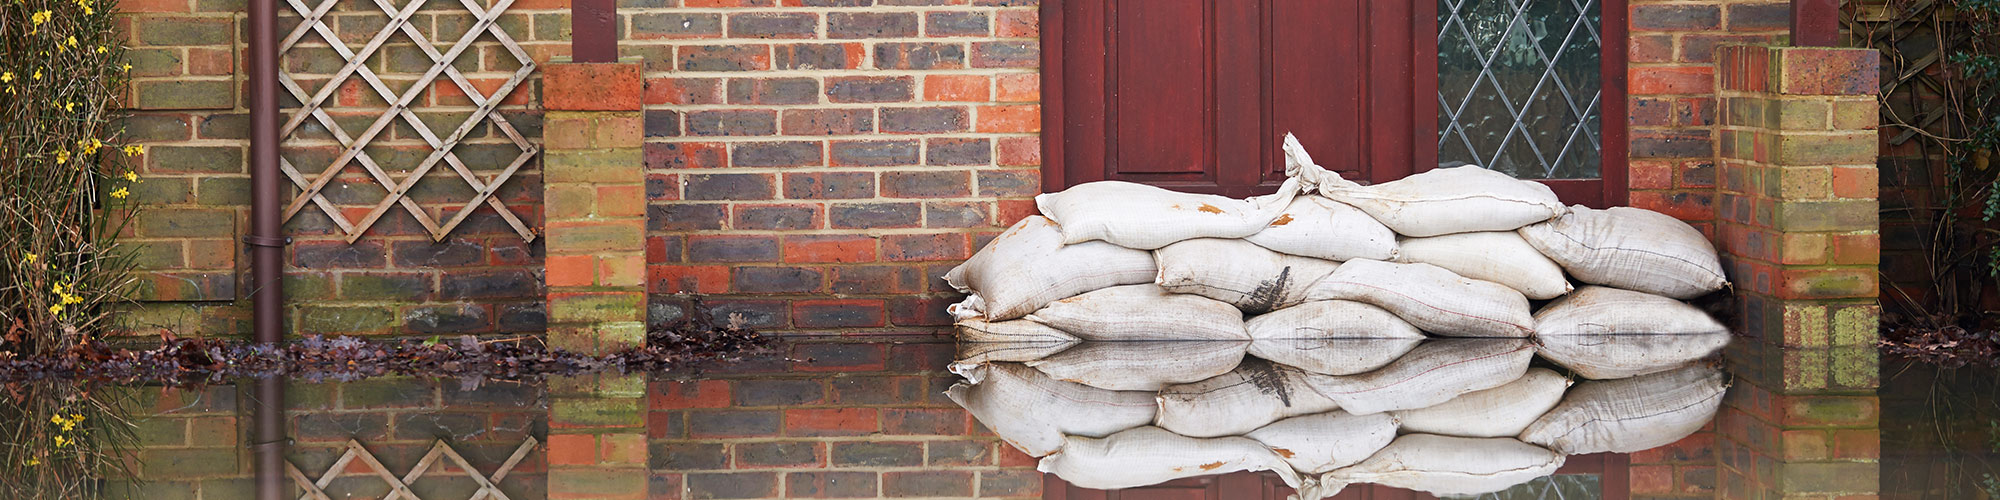 Flood waters and sandbags